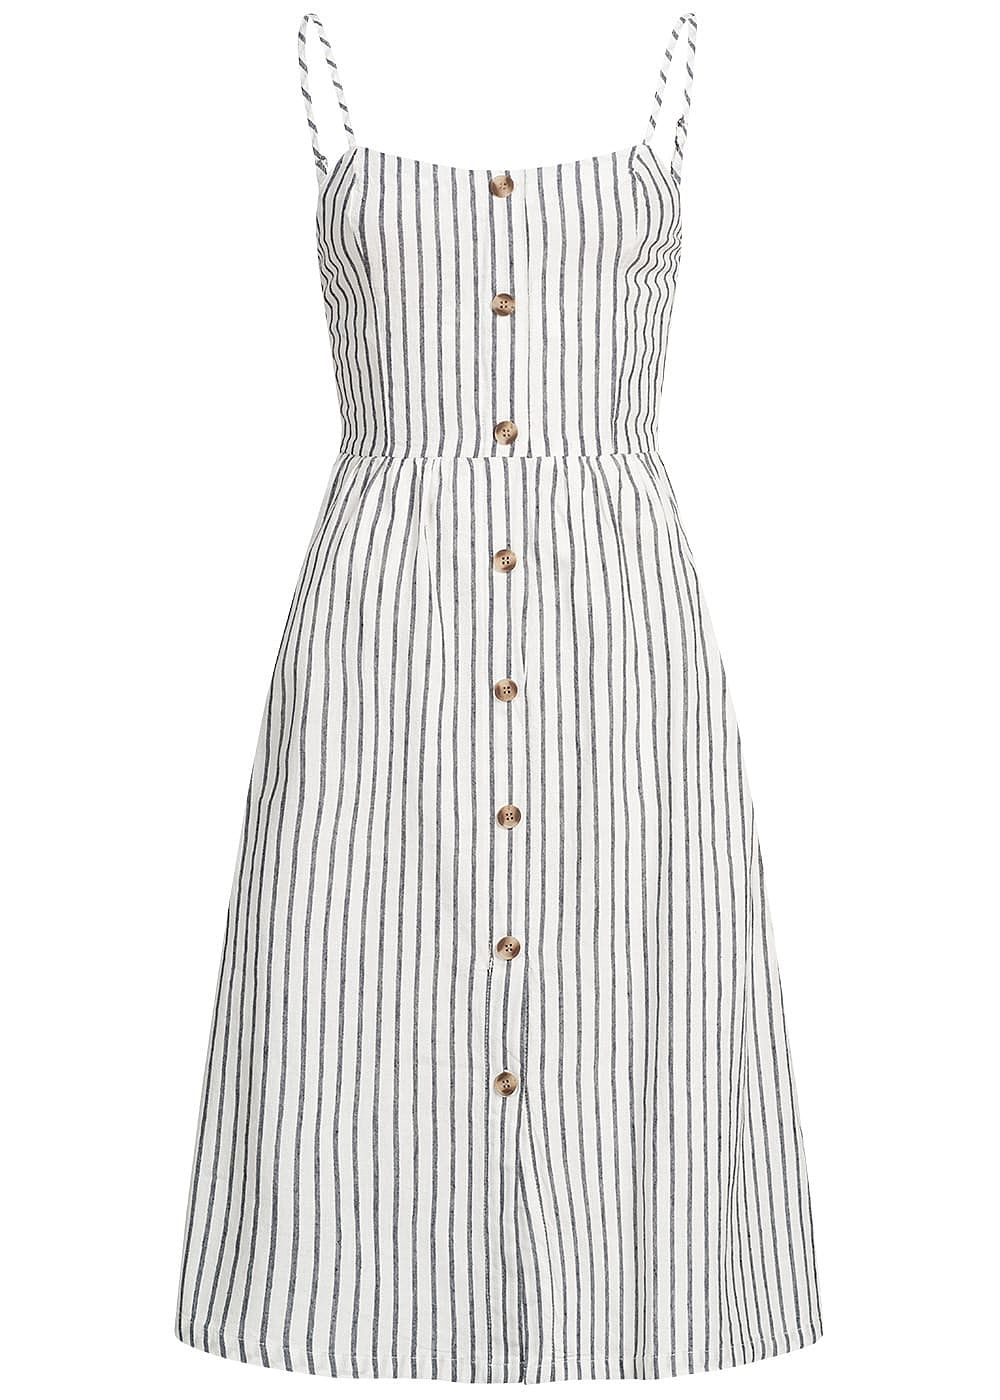 ONLY Damen Striped Denim Strap Dress Buttons Front weiss blau - Art.-Nr.: 19041578